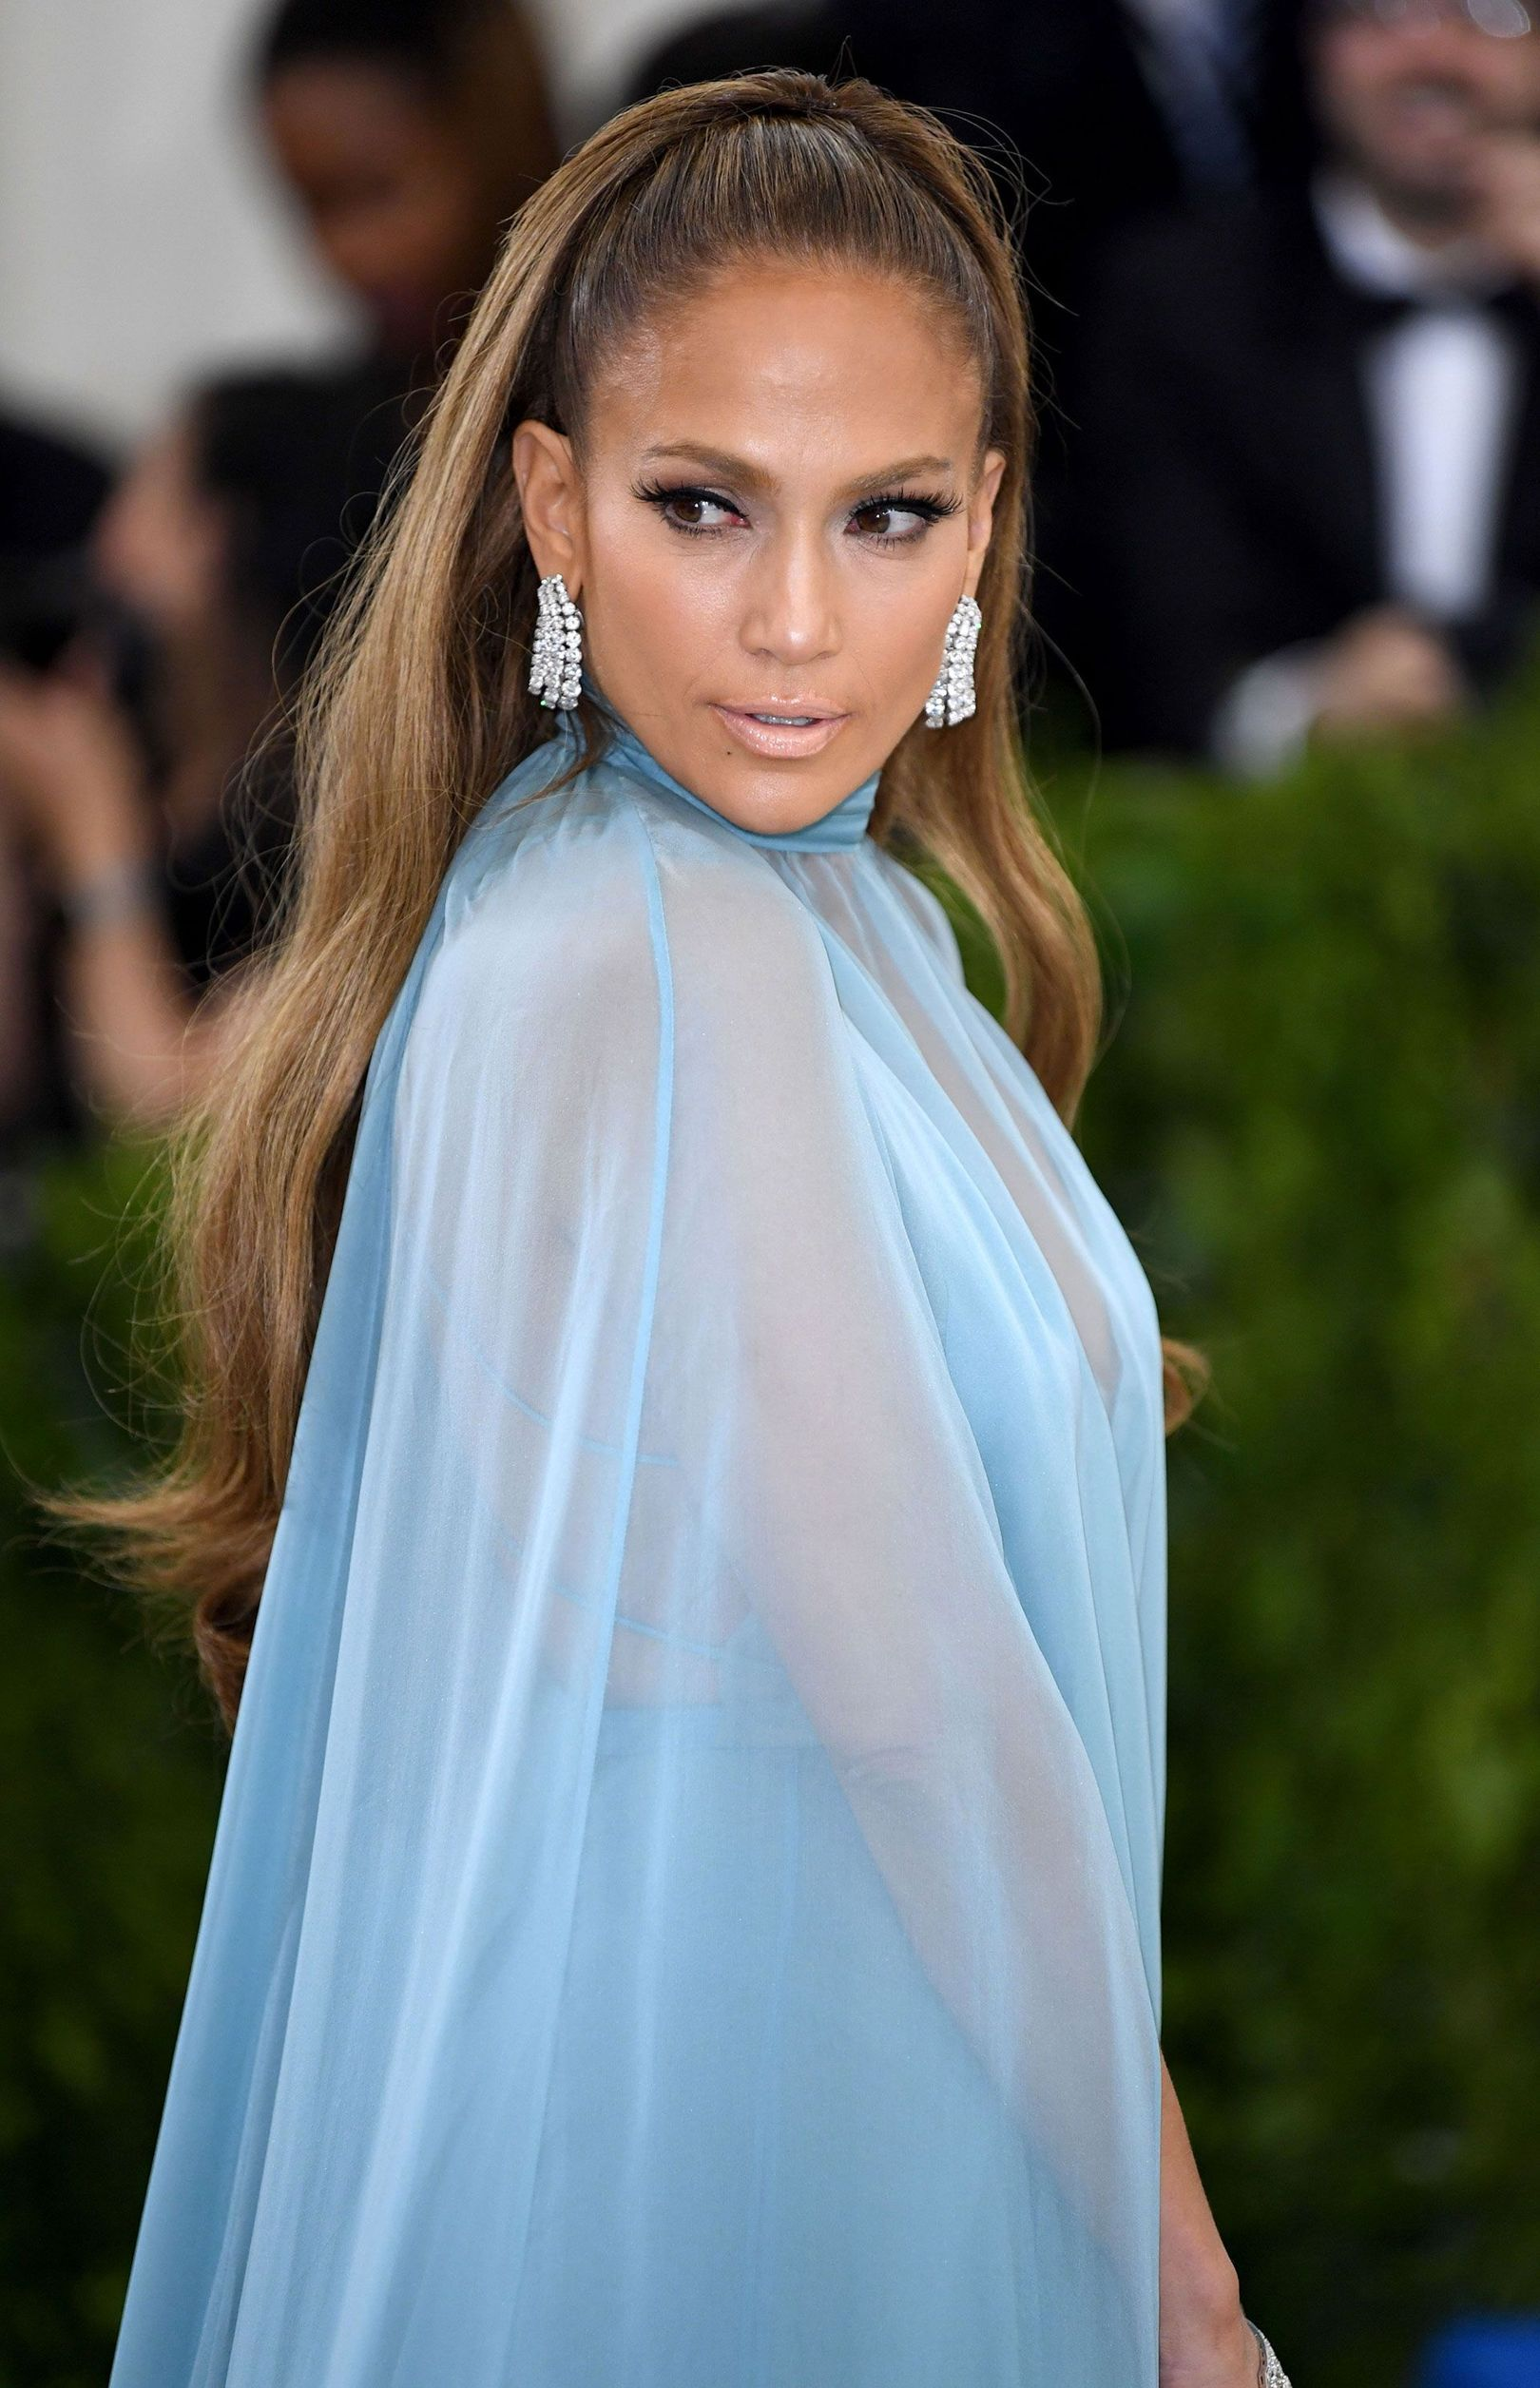 All That Glitters: The Best Jewellery and Accessories From the Met Gala -  Jennifer Lopez hit the red carpet wearing more than 150 carats of diamonds on her vintage Harry Win - #accessories #asianwomen #badasswomen #gala #glitters #jewellery #Met #olderwomen #womenback #womencrush #womenfrases #womenprofile #womensilhouette #womenstyle #womensuit #wonderwomen